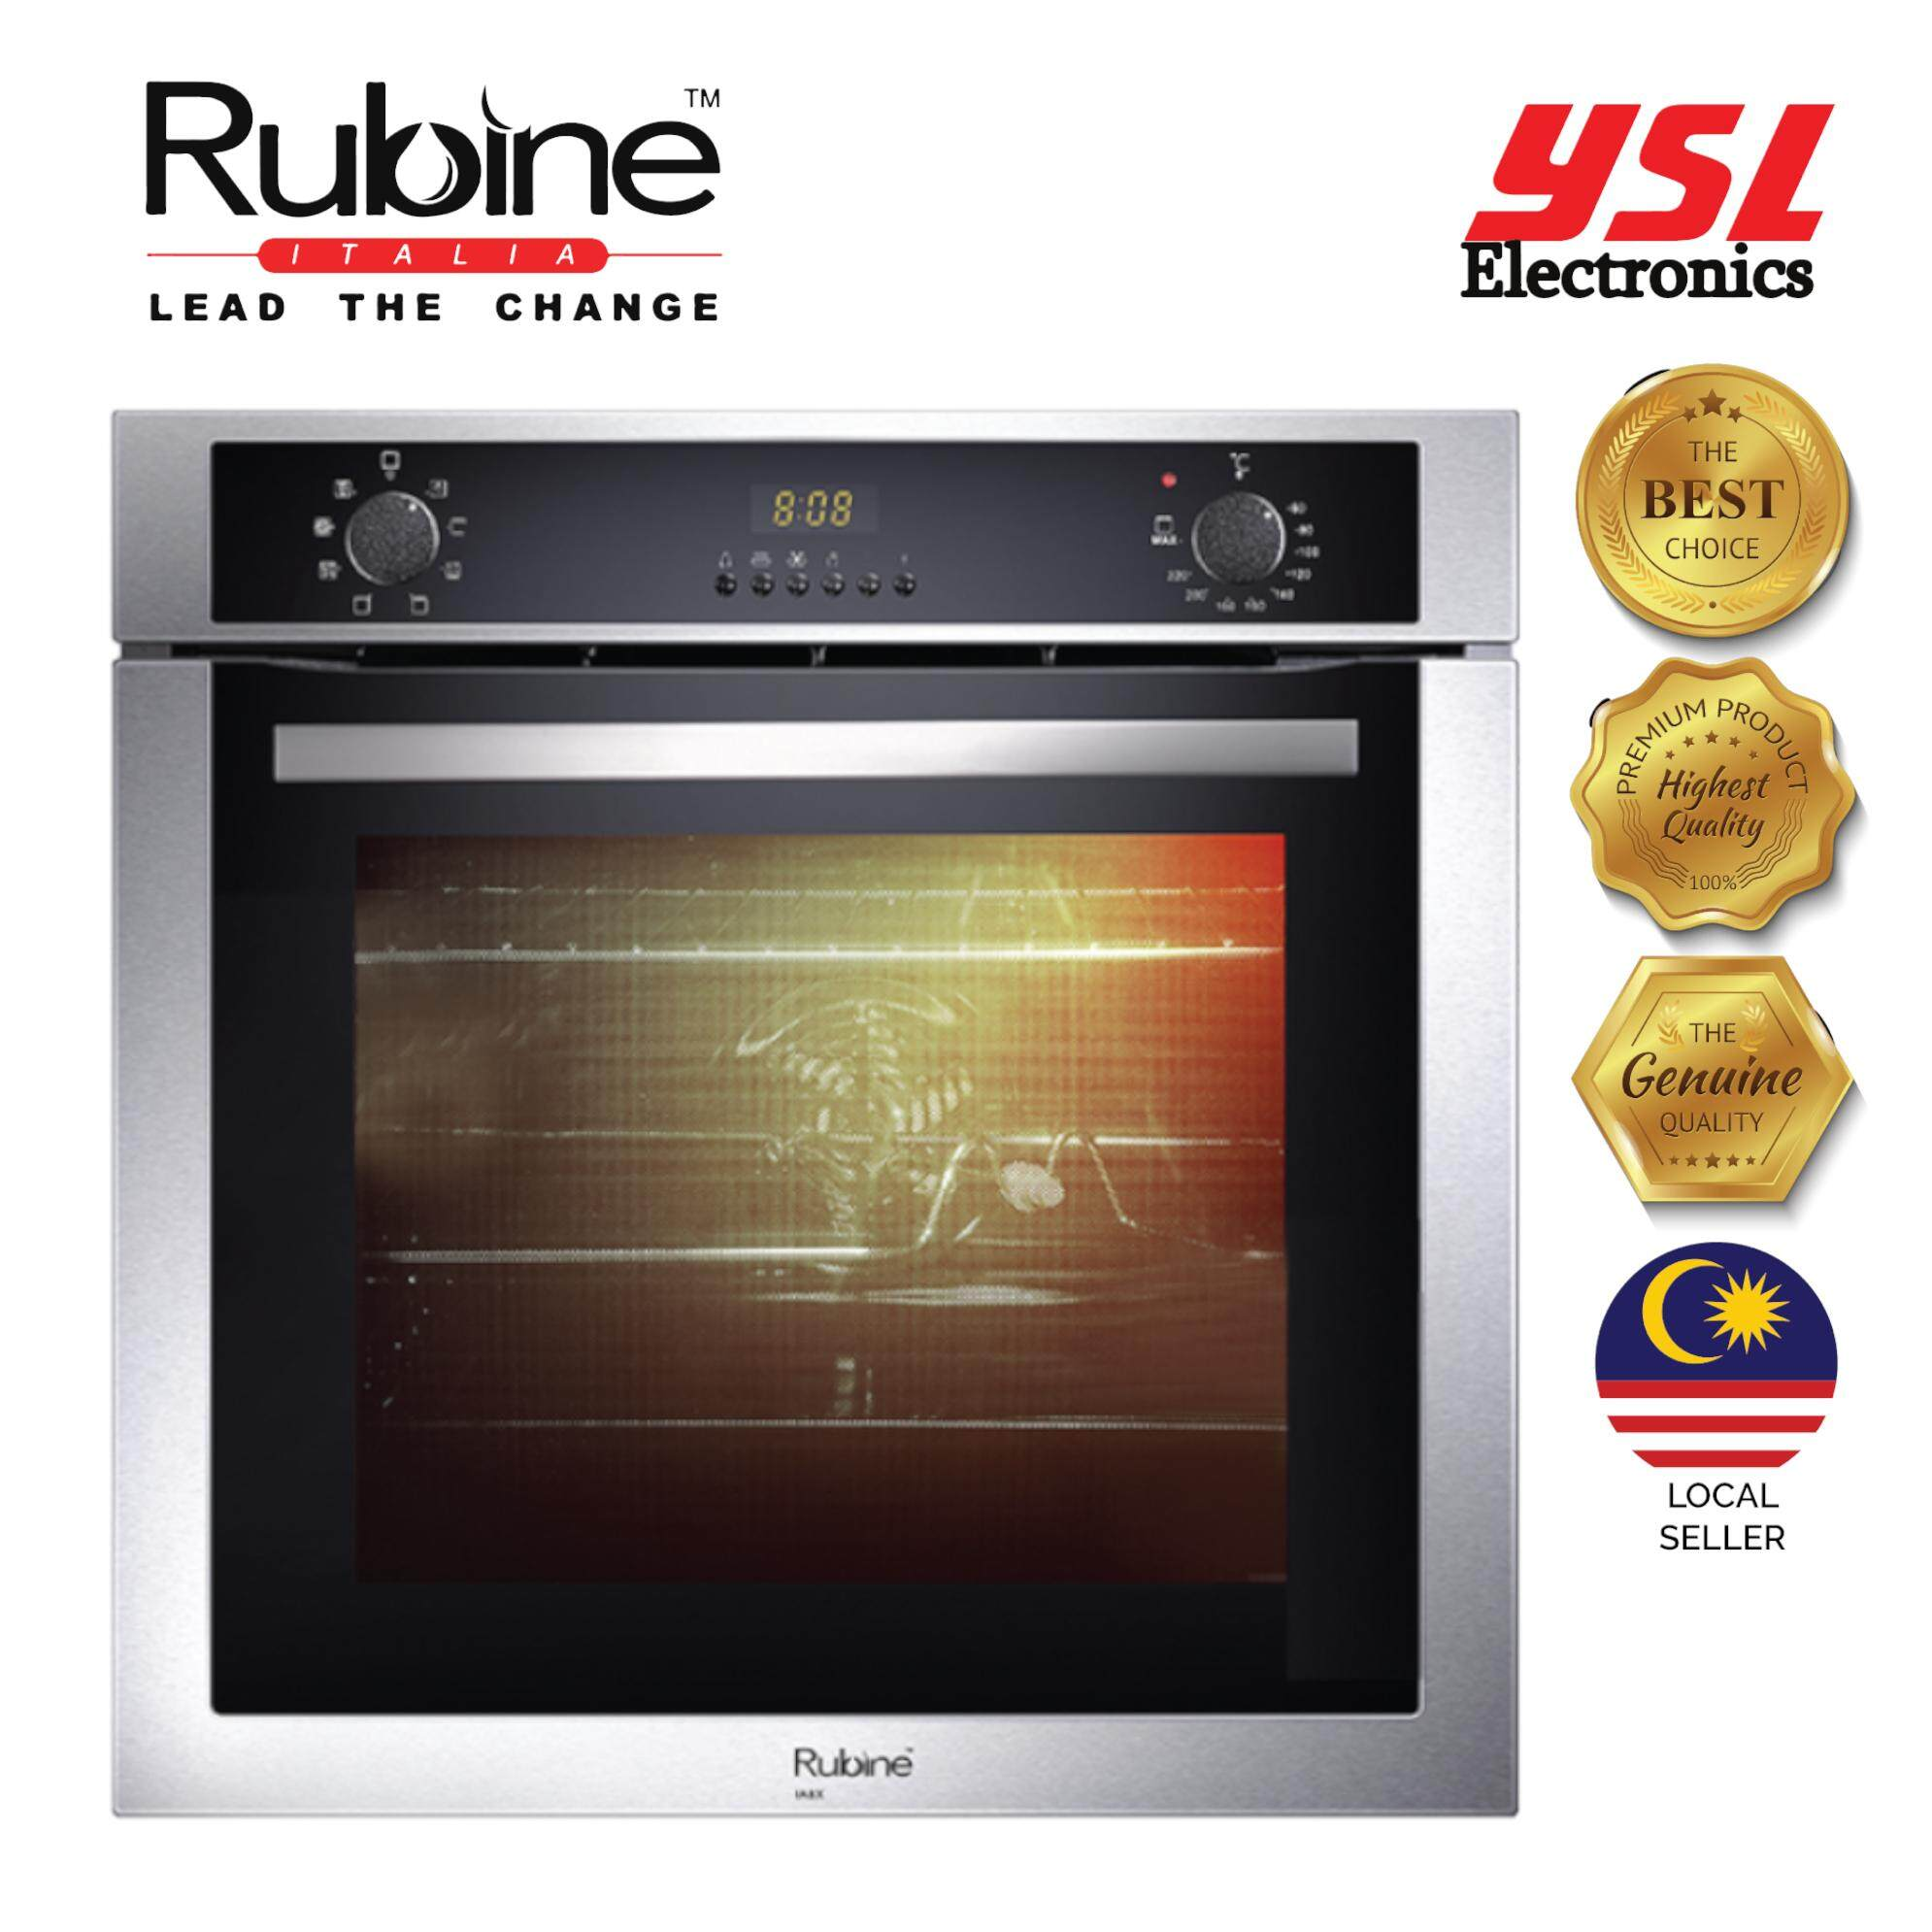 Gambar Oven Gas Rubine Build In Oven Rbo Ia8x 70ss